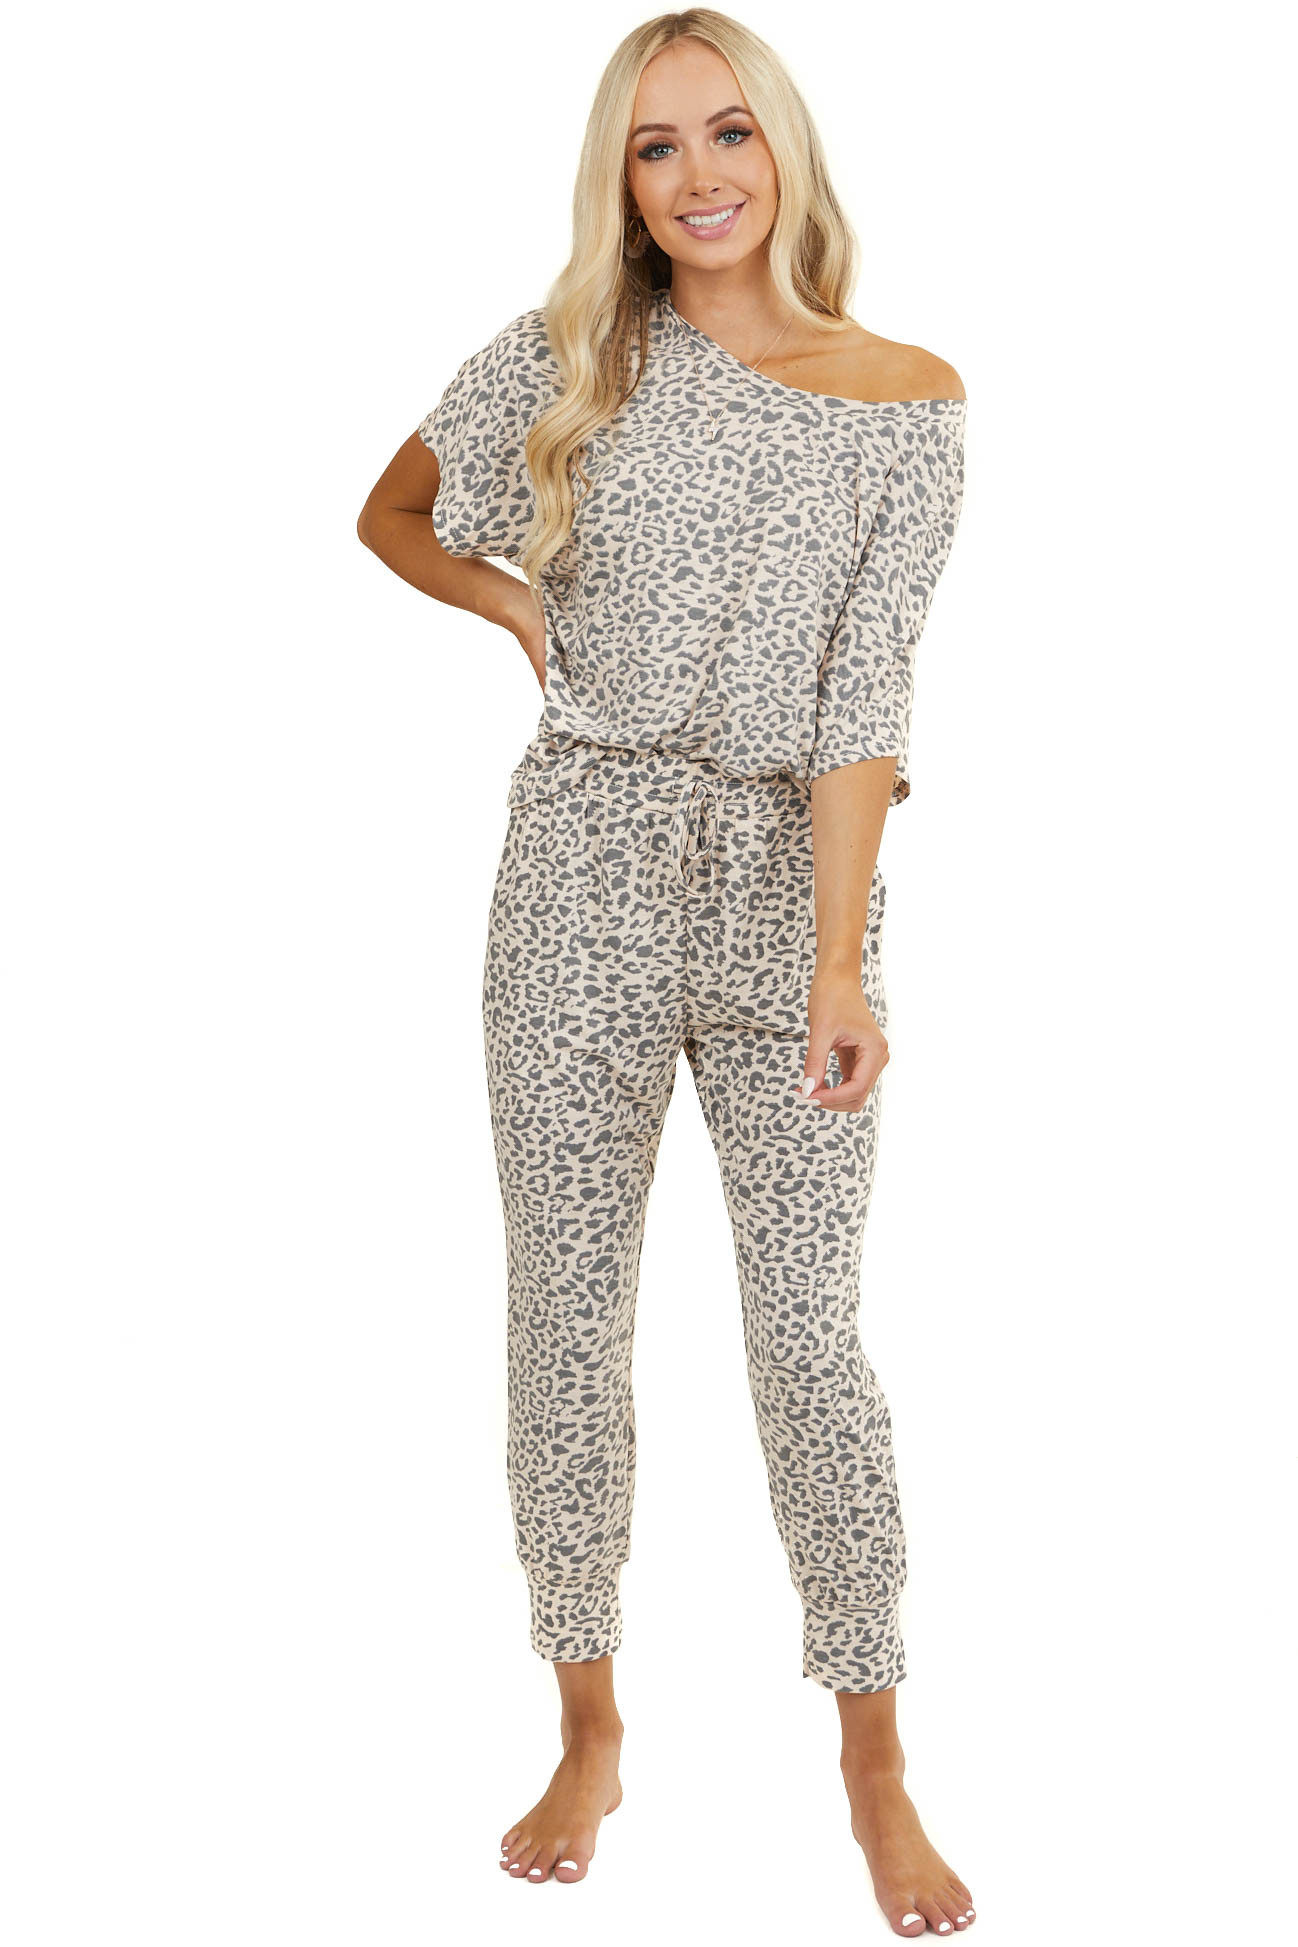 Dusty Peach Leopard Print Top and Sweatpants Two Piece Set